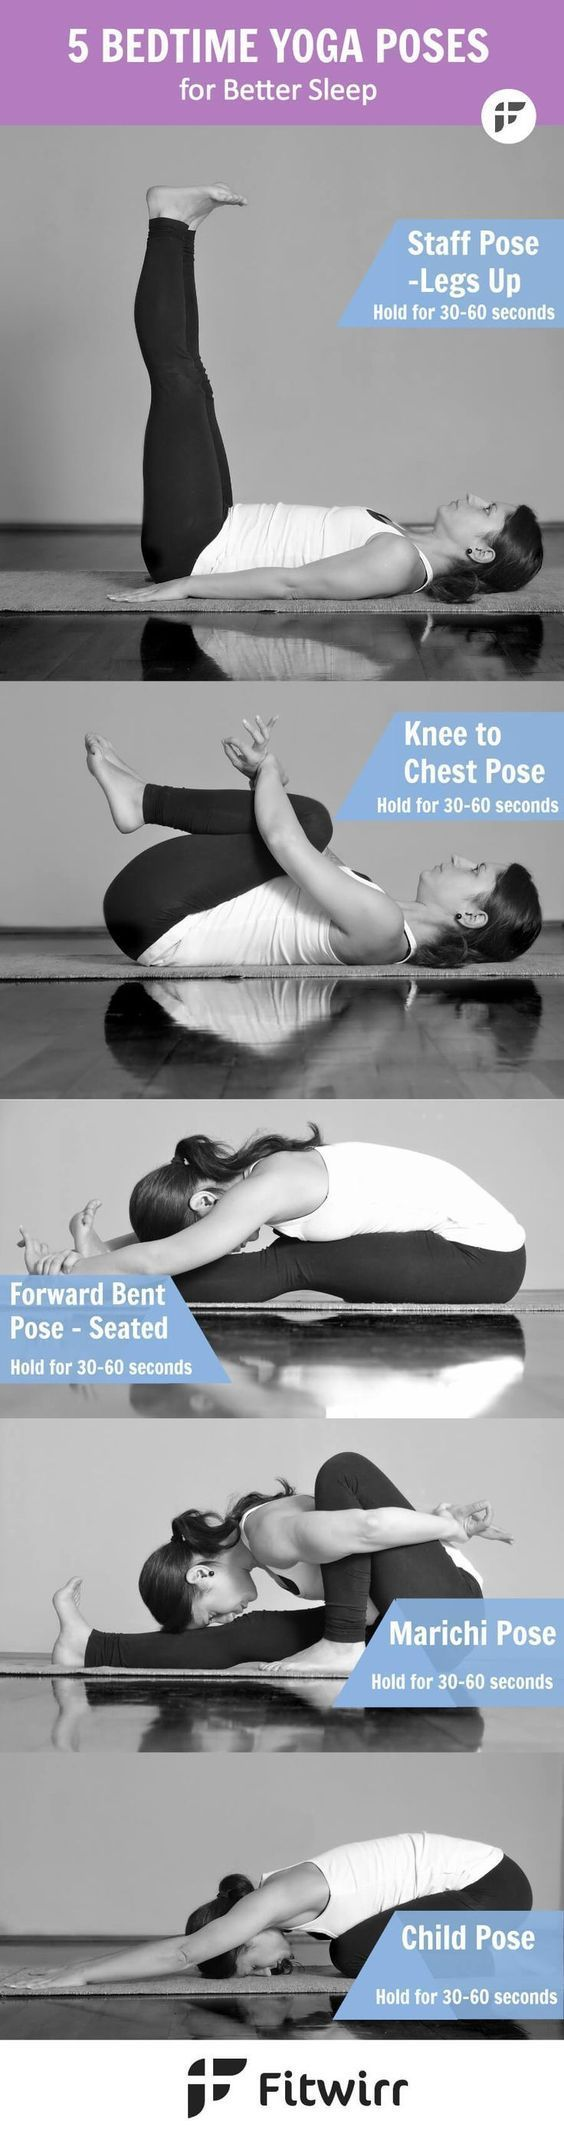 5 Bedtime Yoga Poses for Better Sleep for a healthier + simple life!